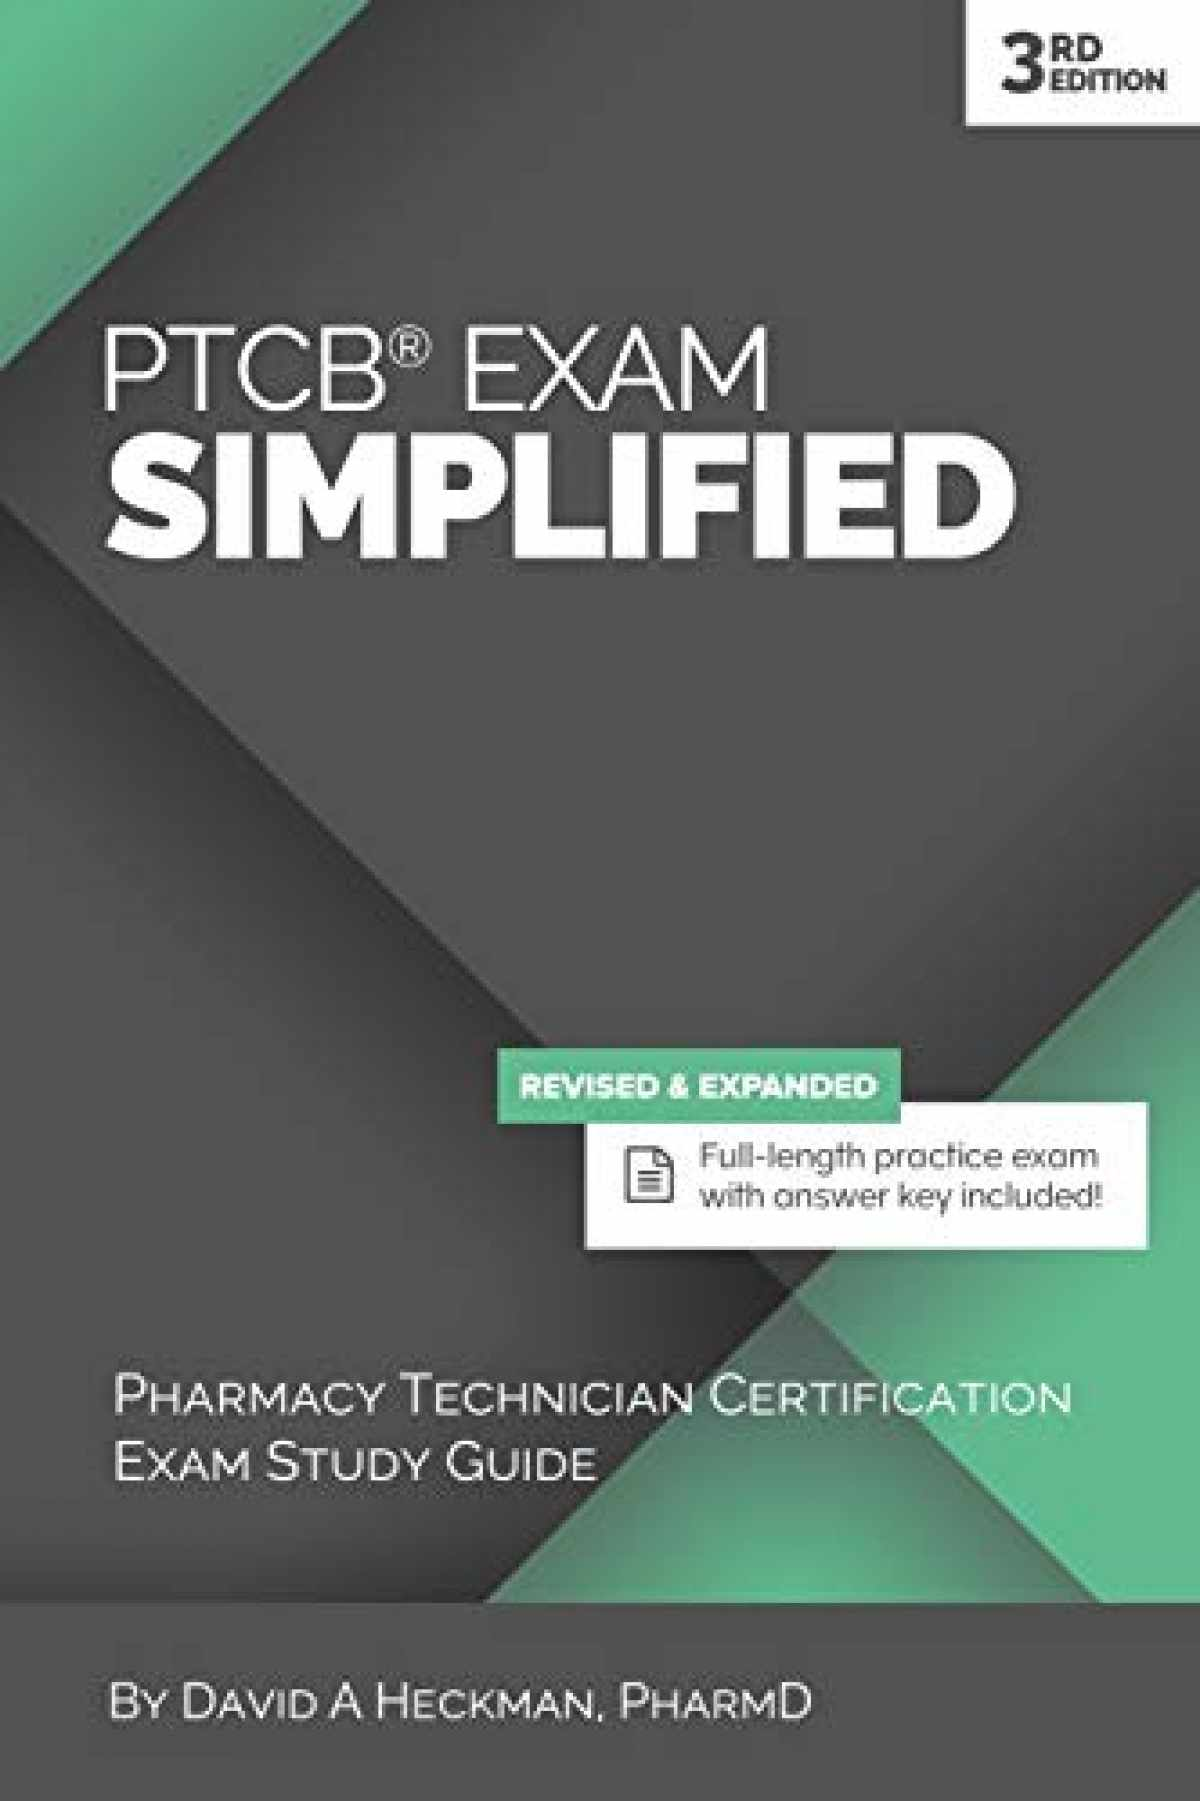 Sell Buy Or Rent Ptcb Exam Simplified 3rd Edition Pharmacy